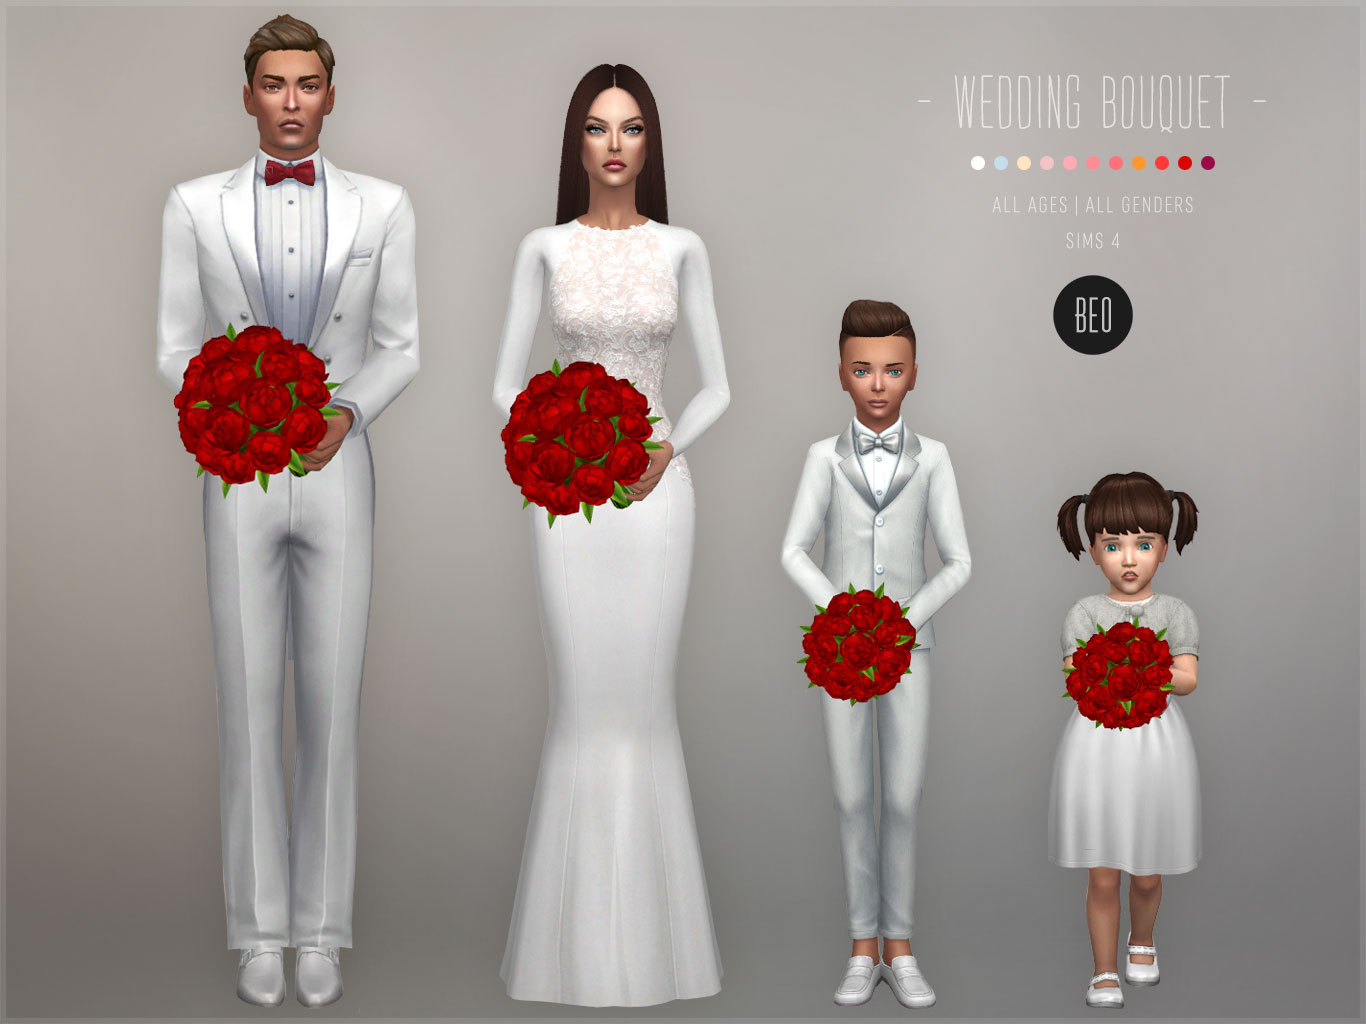 Wedding bouquet (update) for The Sims 4 by BEO